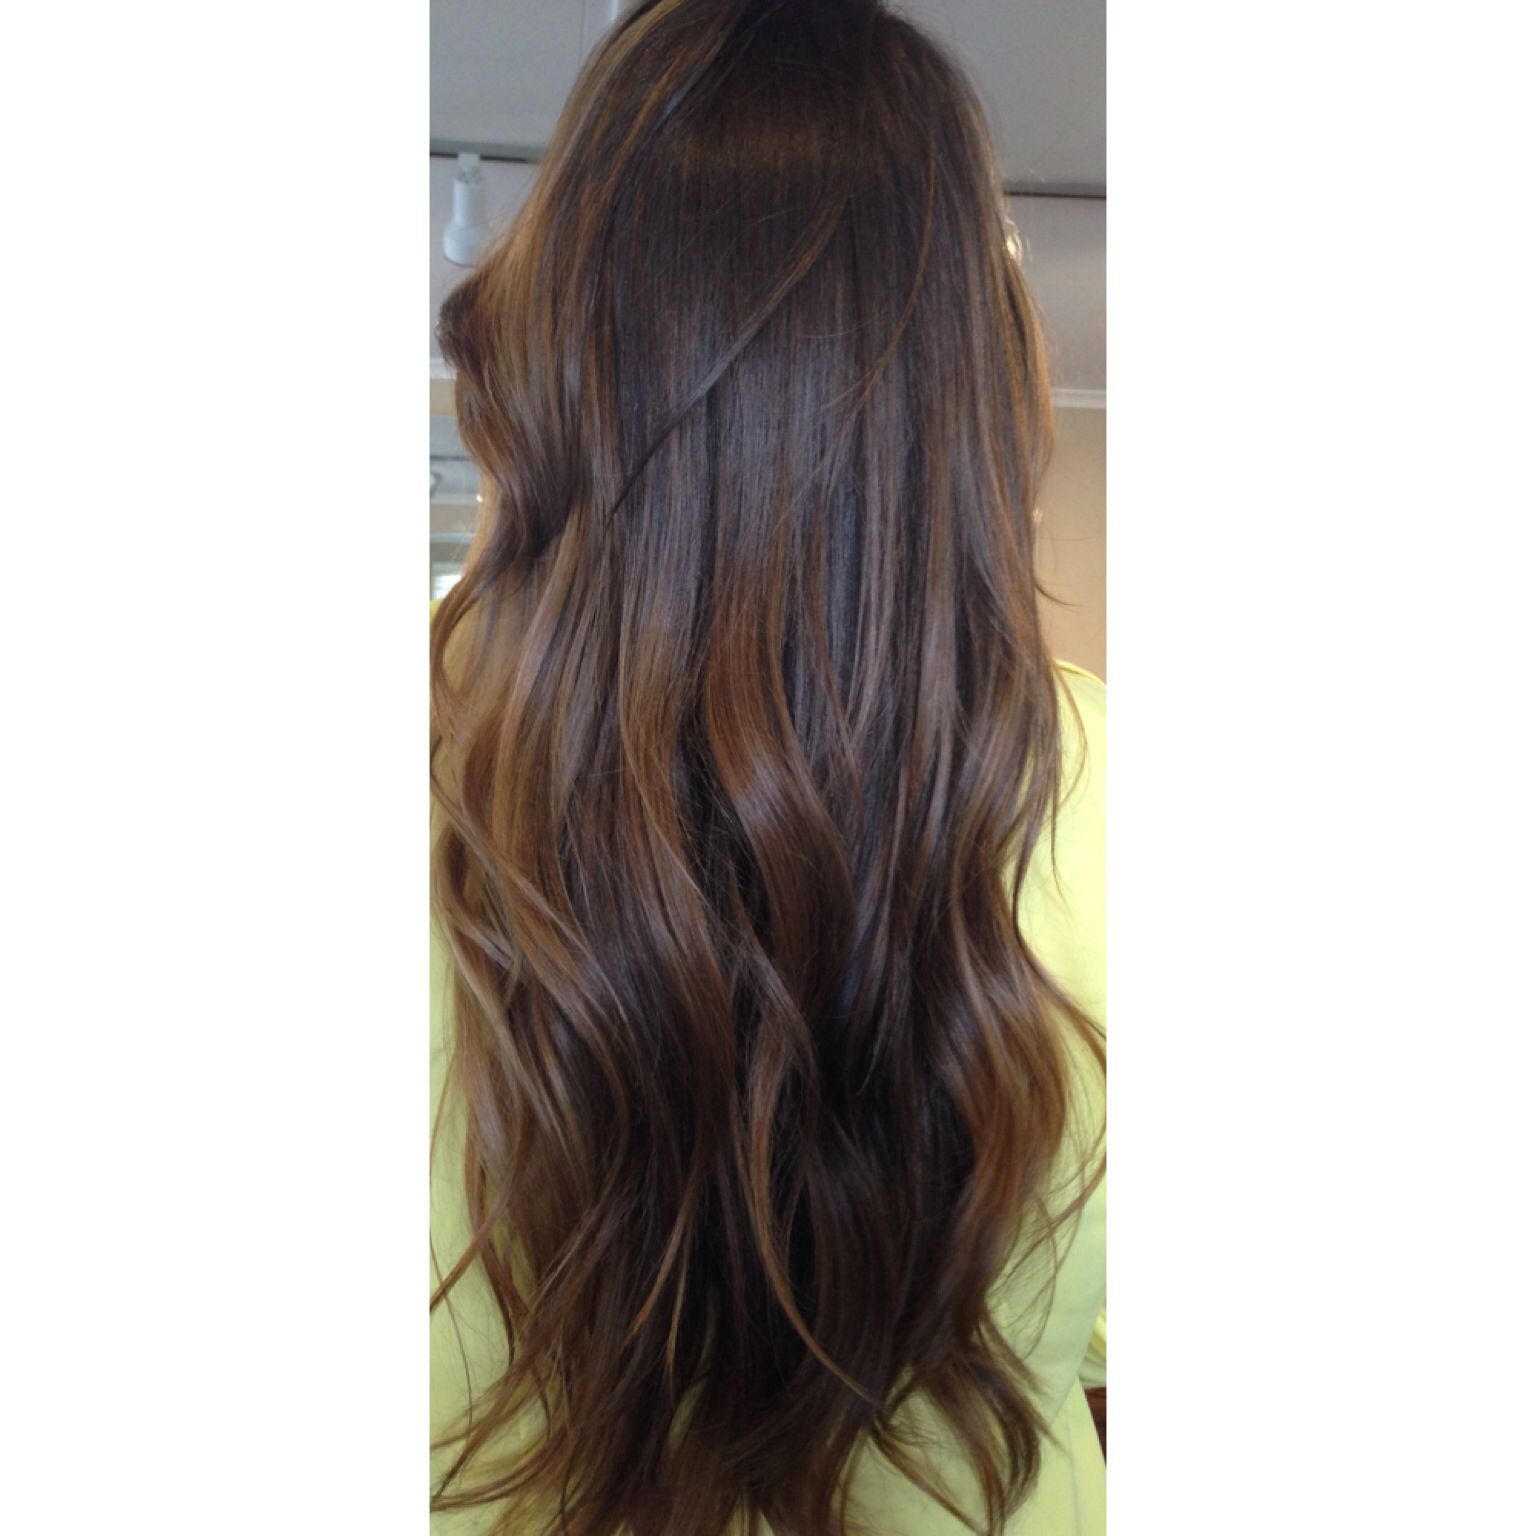 Long Chocolate Brown Brunette Dark Hair Highlights Balayage And Freehand Painted Throughout Natural Level 3